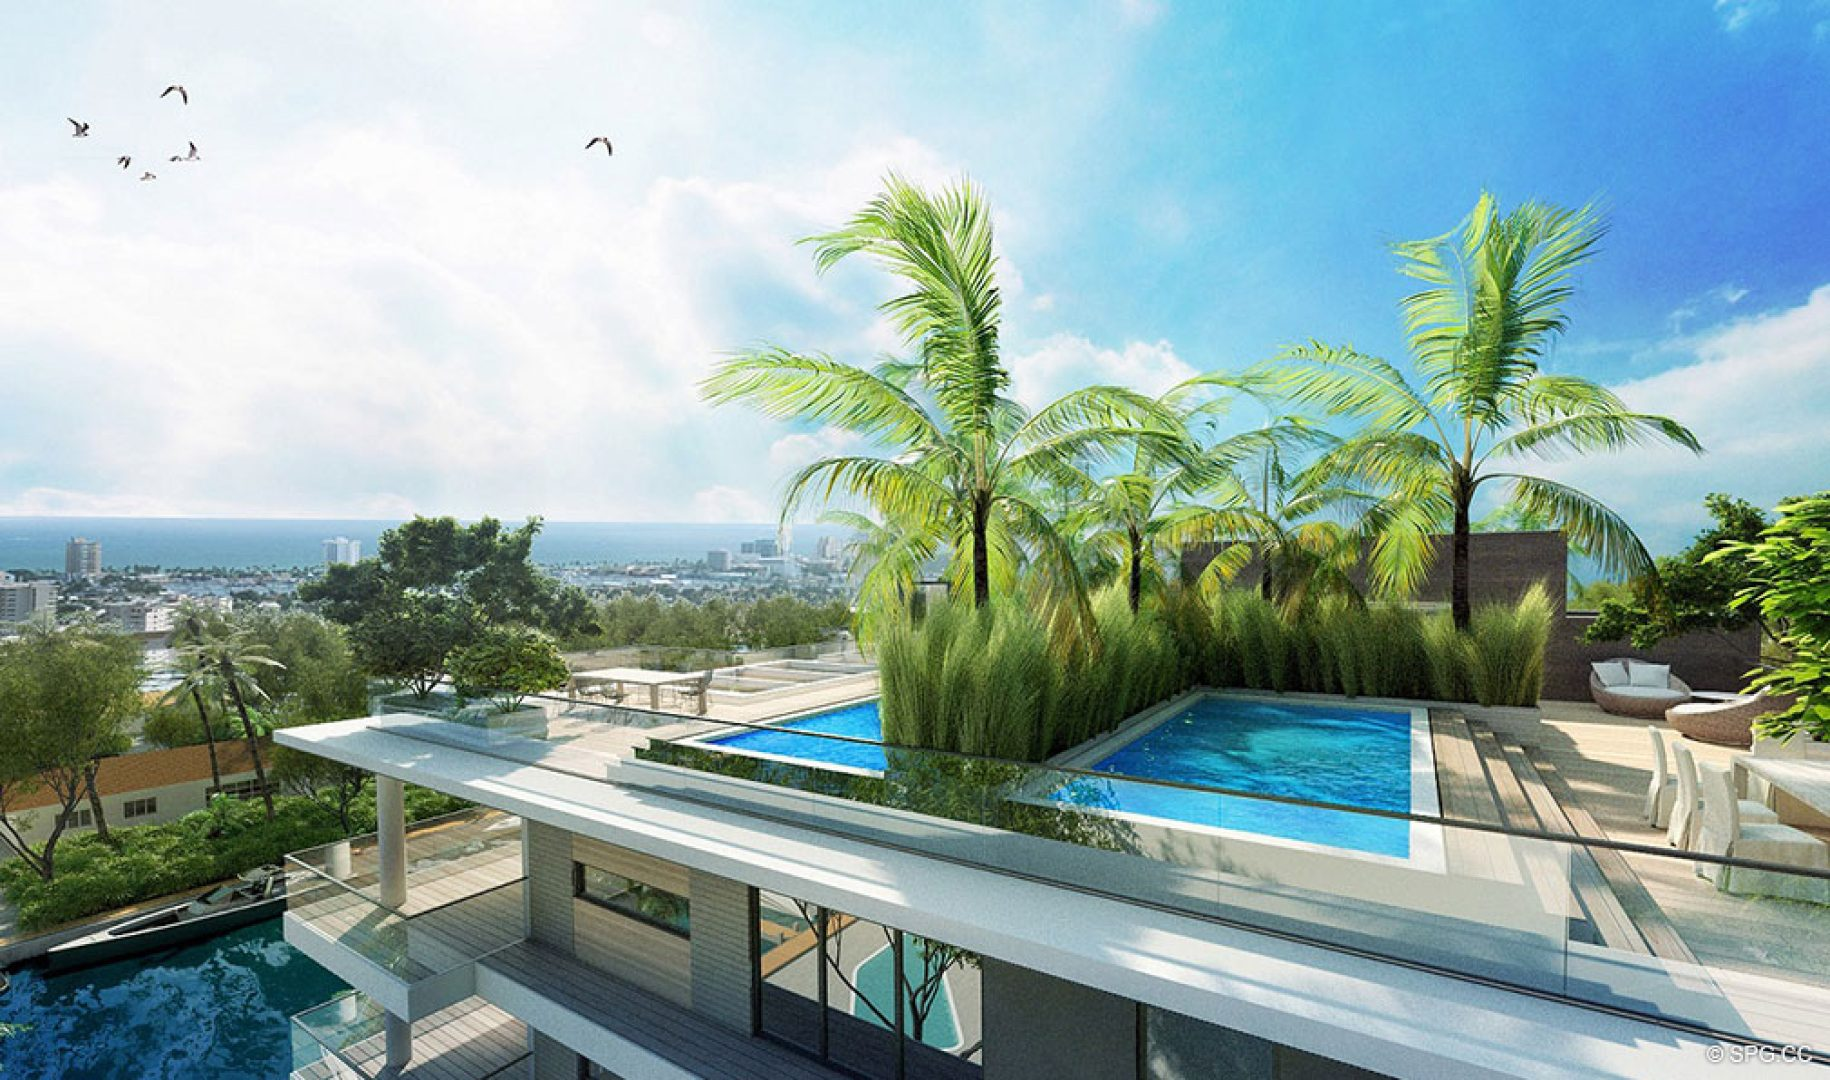 Rooftop Pools at AquaLuna Las Olas, Luxury Waterfront Condos in Fort Lauderdale, Florida 33301